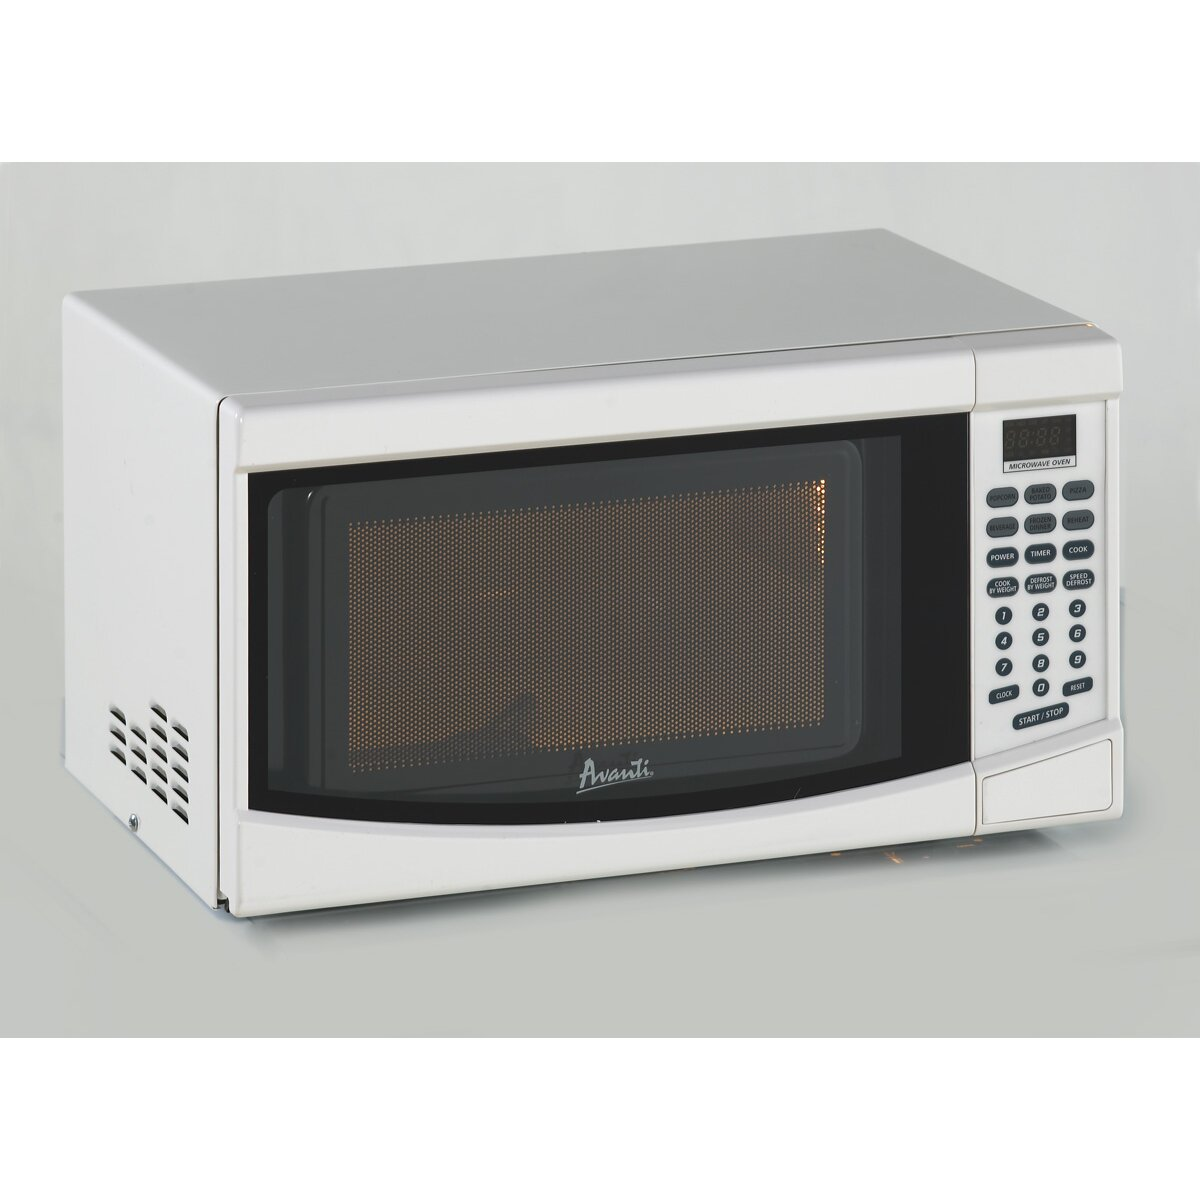 Countertop Microwave Oven Sale : Avanti 0.7 cu. ft. 700W Countertop Microwave & Reviews Wayfair.ca